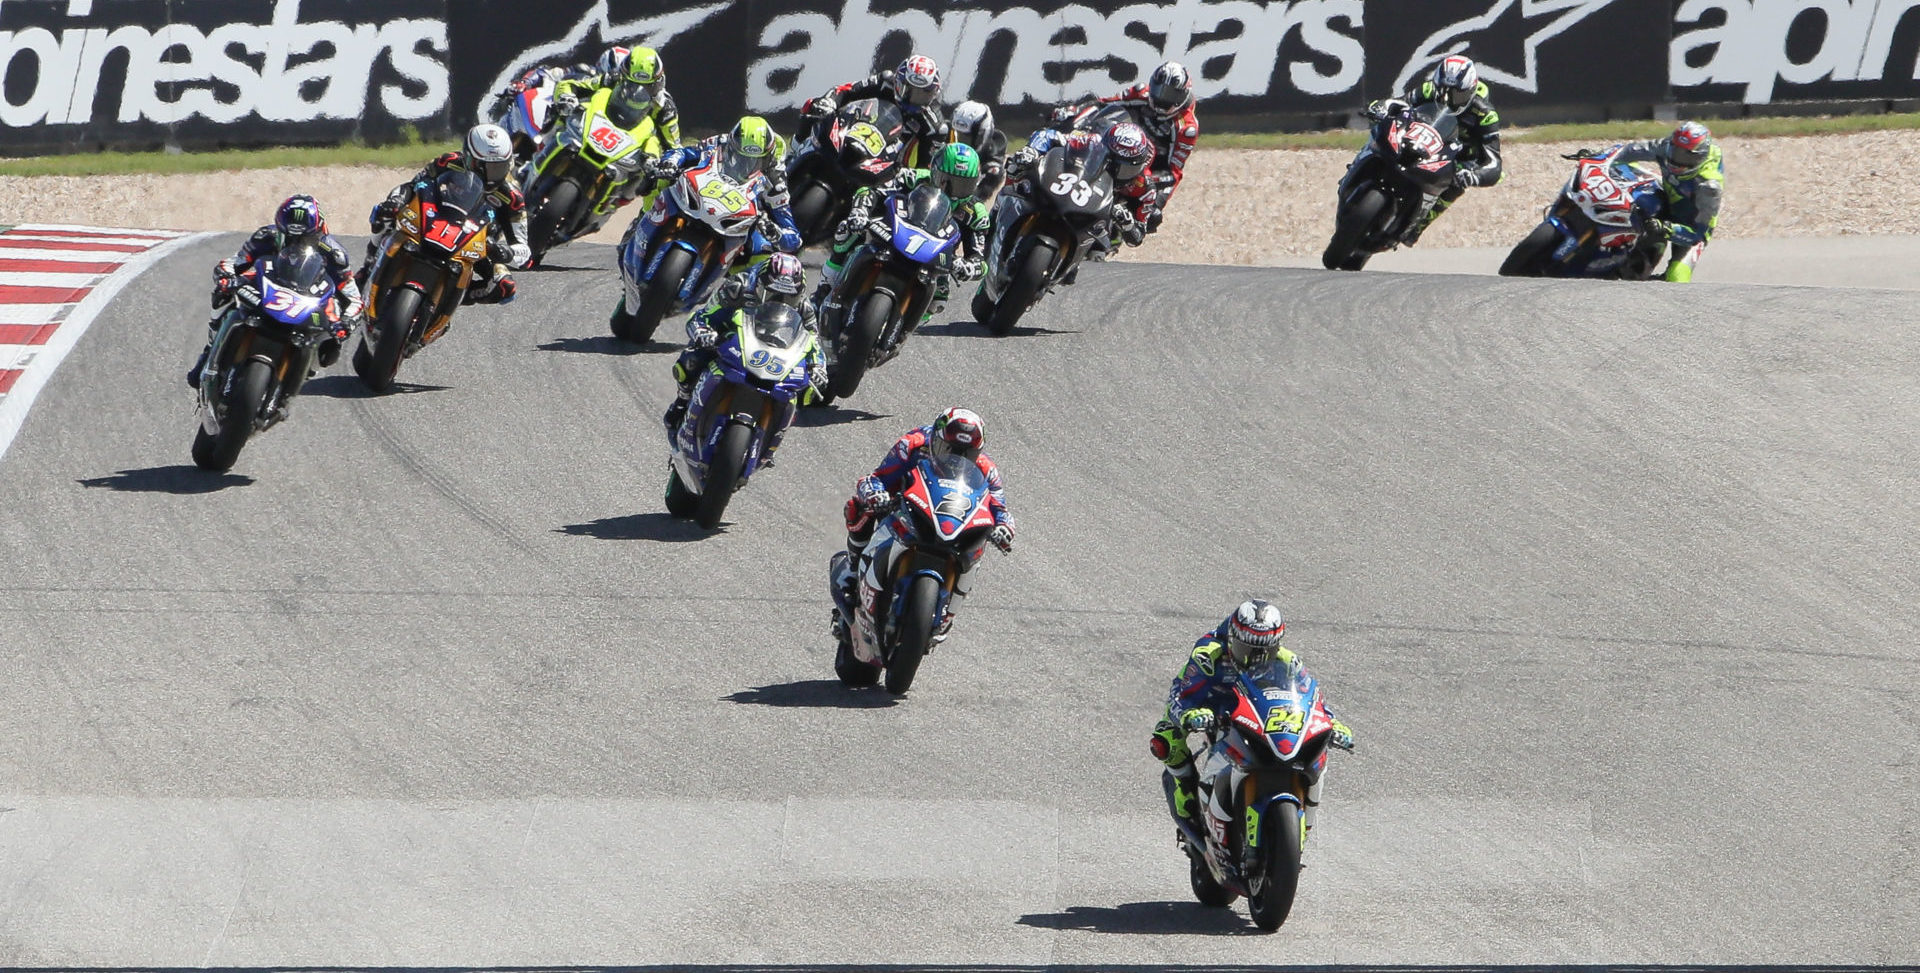 The start of MotoAmerica Superbike Race Two at COTA in 2019. Photo by Brian J. Nelson, courtesy MotoAmerica.